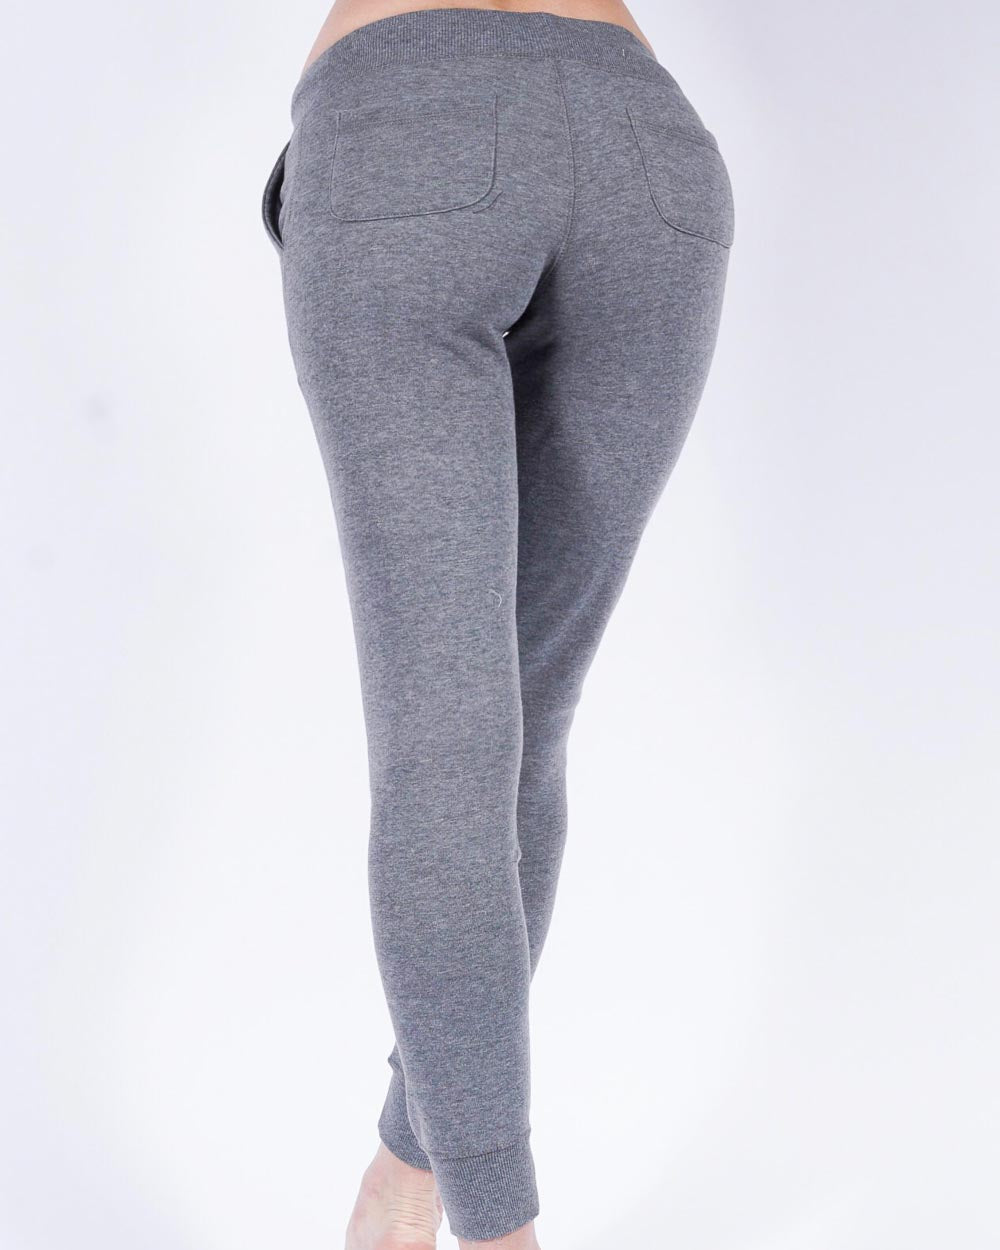 PUSSY joggers, gry/wht